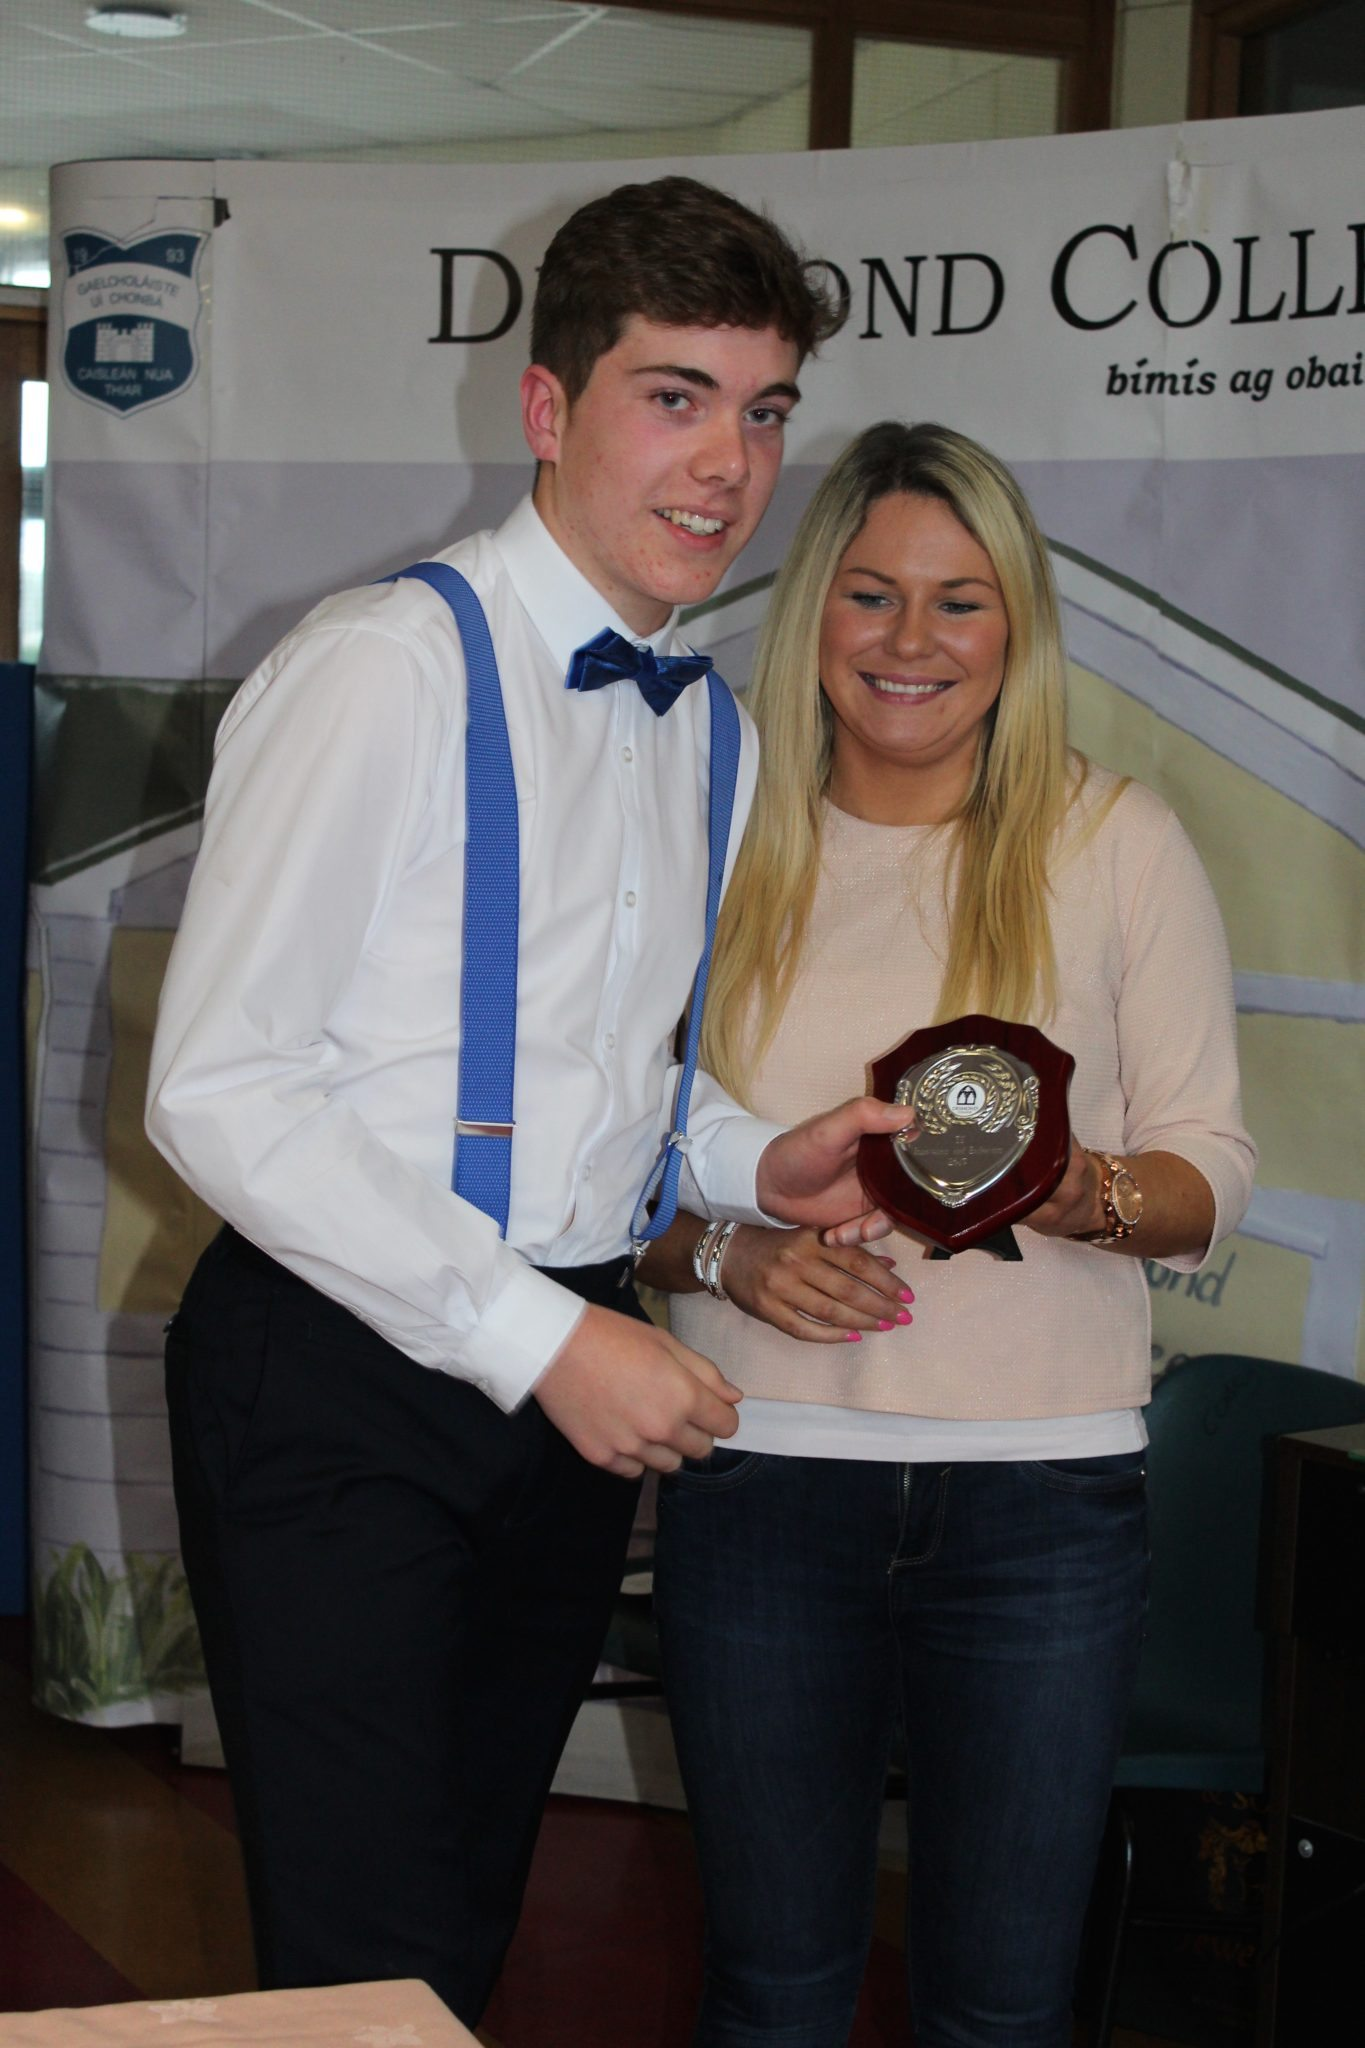 Desmond College TY Graduation 2015: Innovation and Endeavours Awards: Seamus Hurley with Ms Broderick